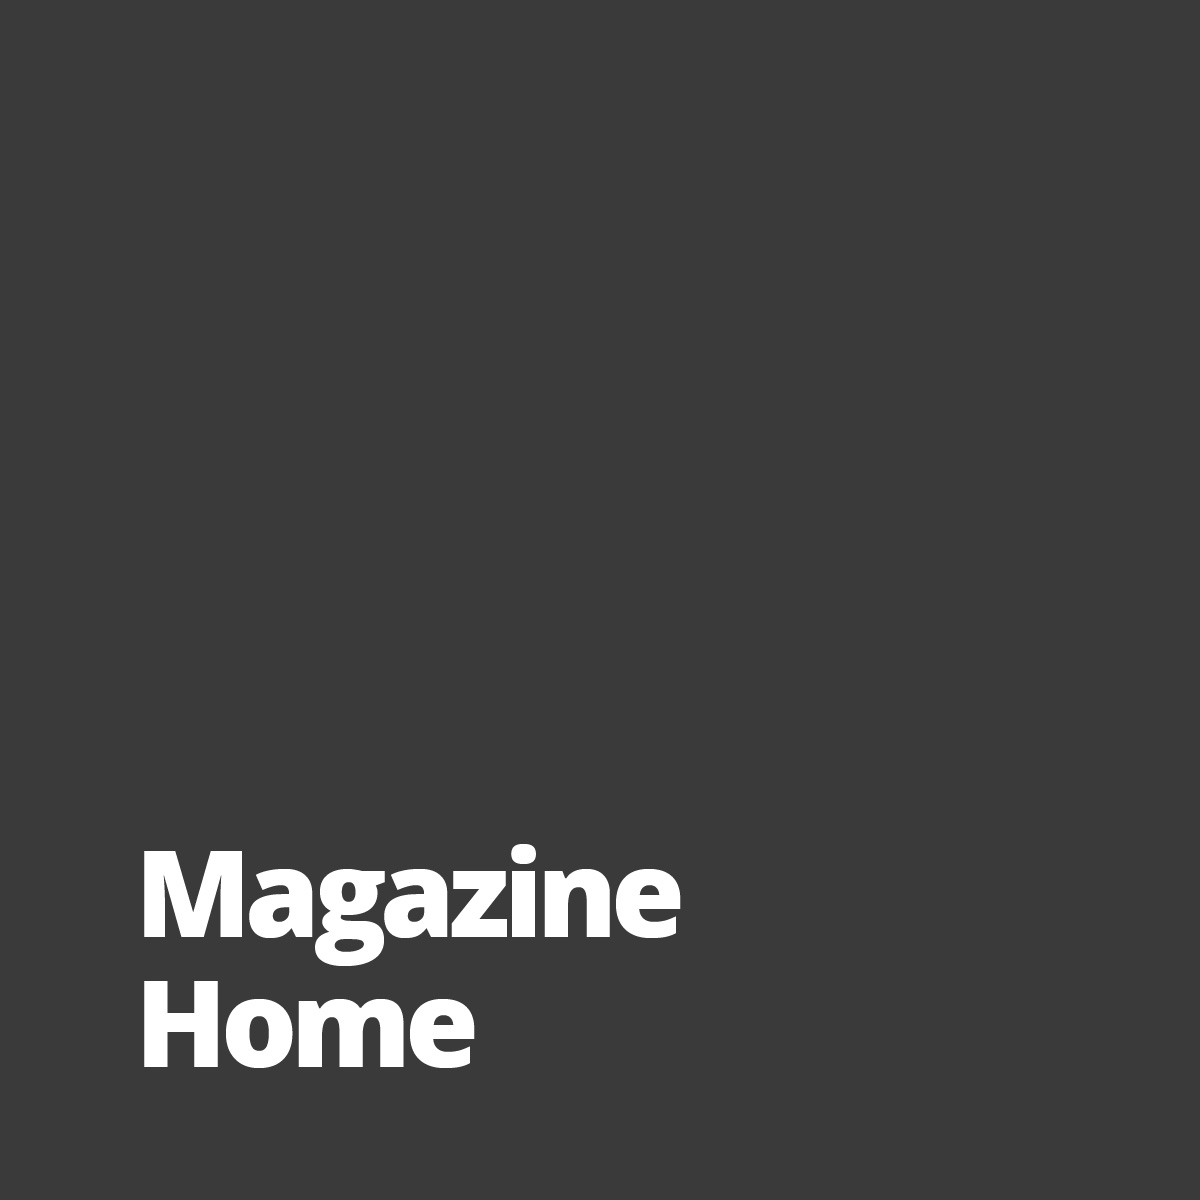 magazne-home